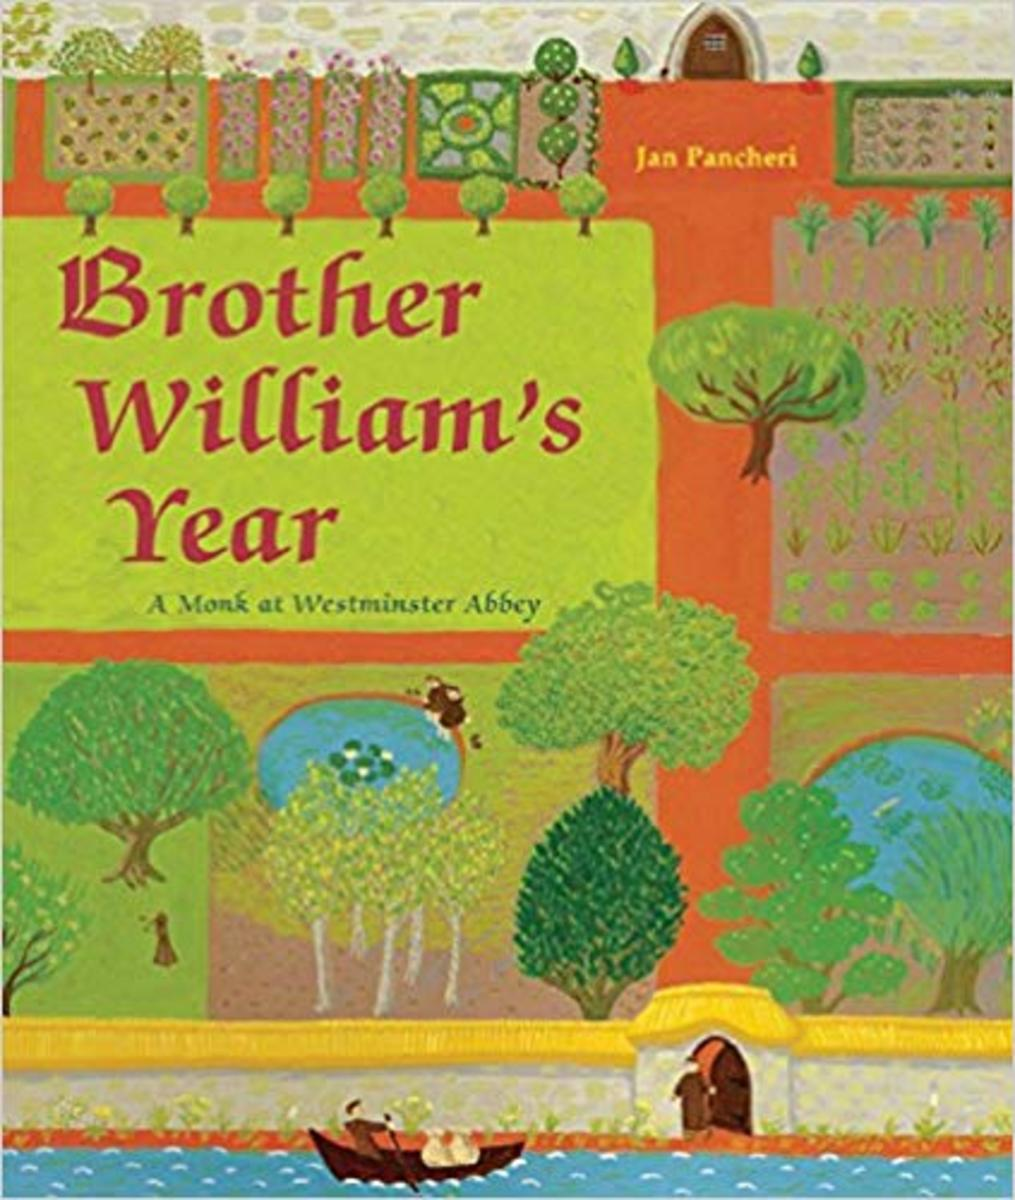 Brother William's Year: A Monk at Westminster Abbey by Jan Pancheri - Book image is from amazon .com.